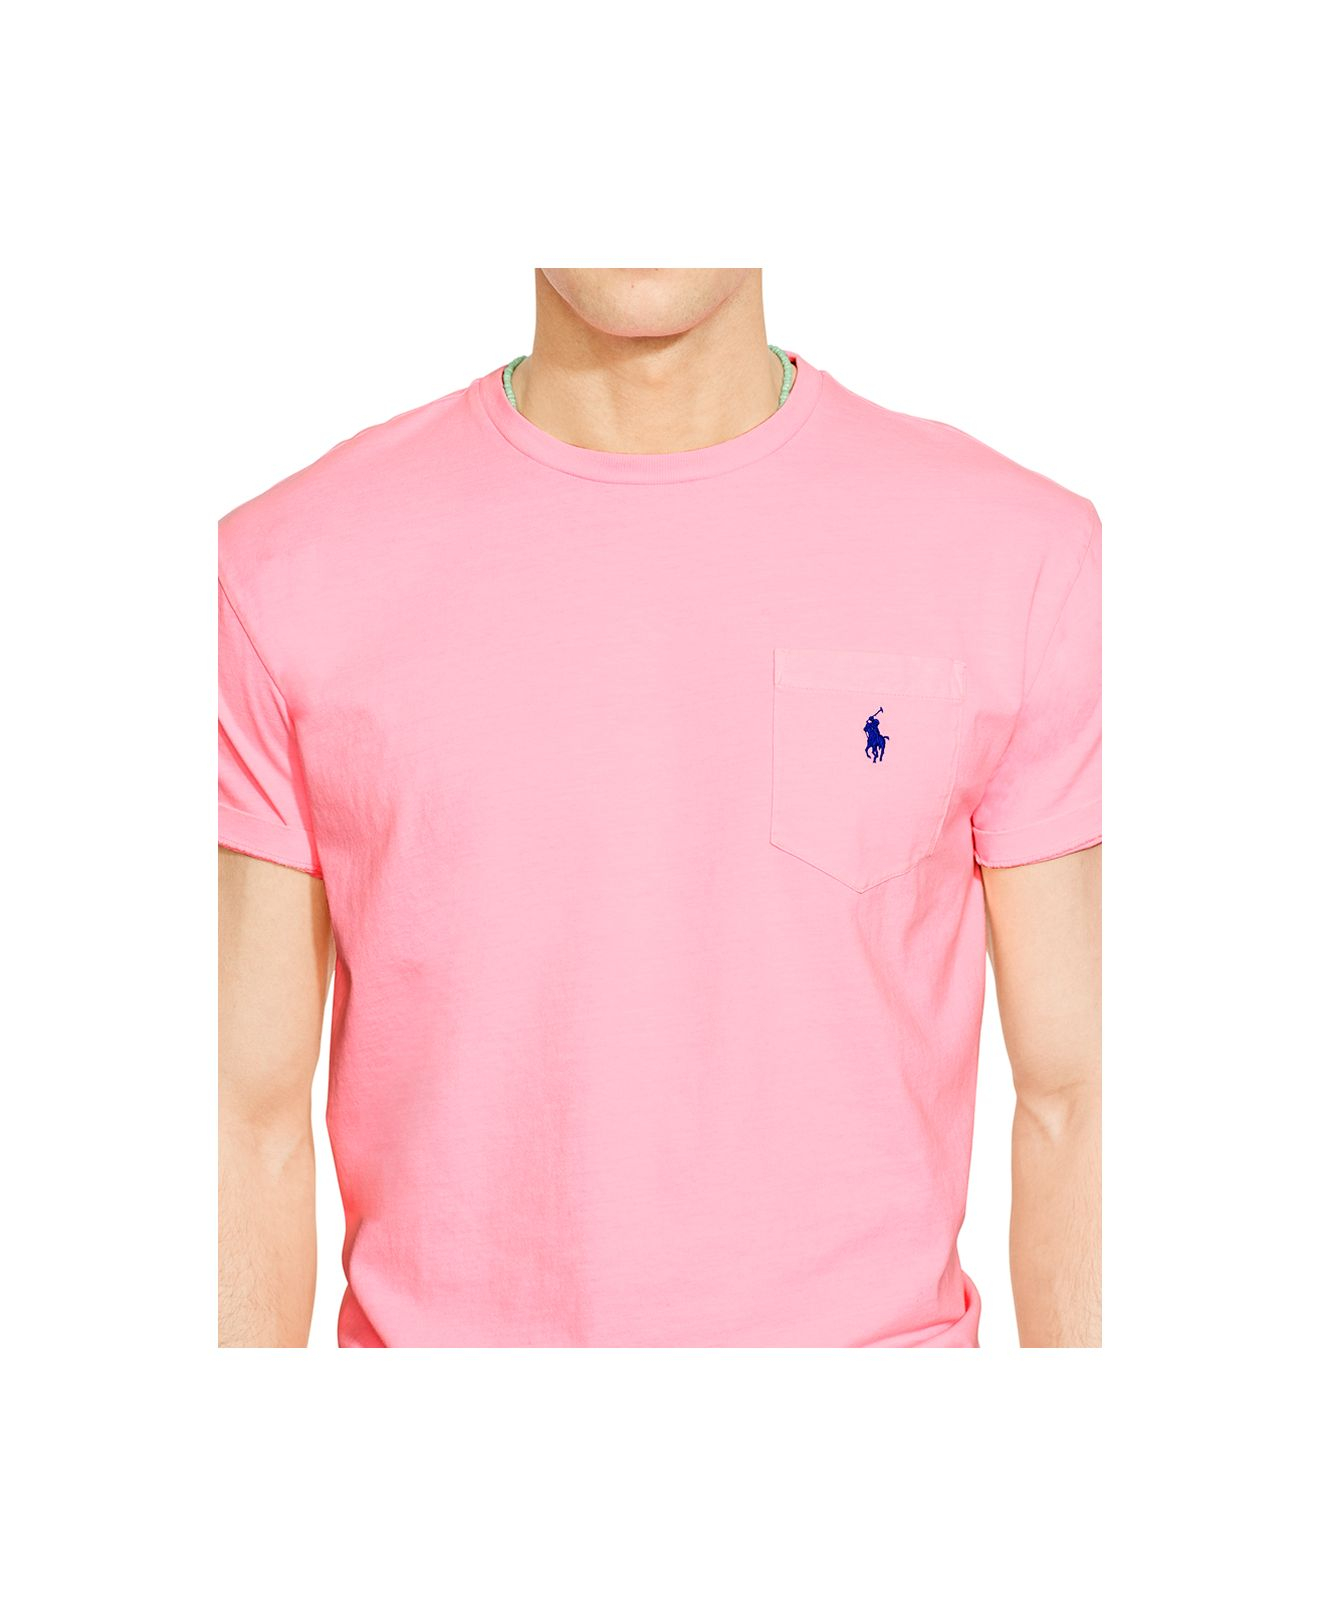 5e2d4e540eed7 ... low price lyst polo ralph lauren classic fit neon jersey pocket crew  neck t 5009d 6496f